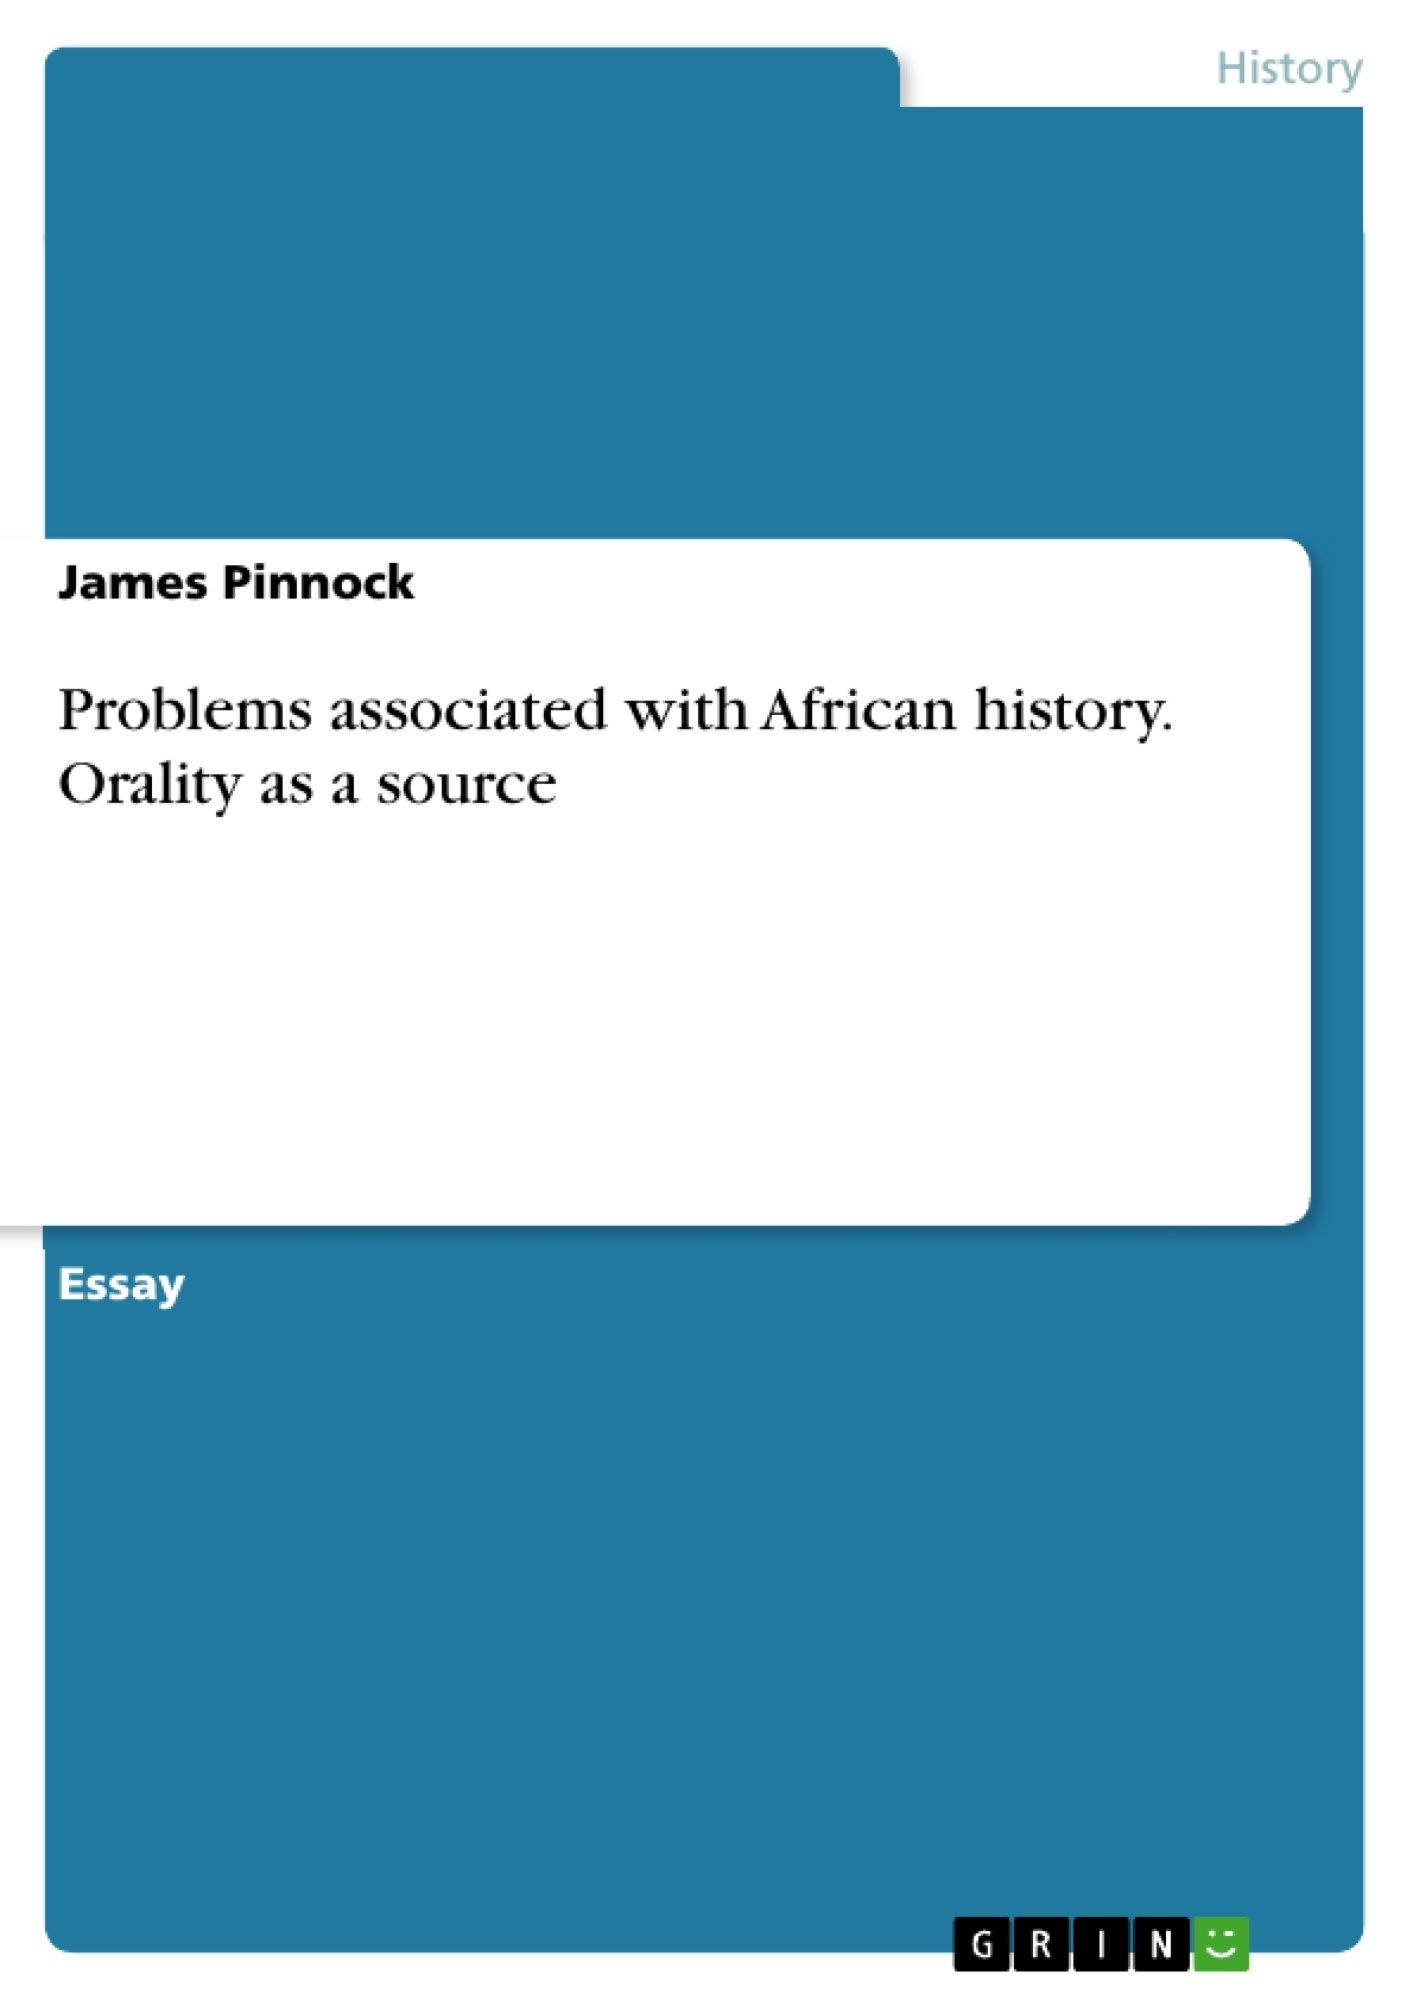 Title: Problems associated with African history. Orality as a source